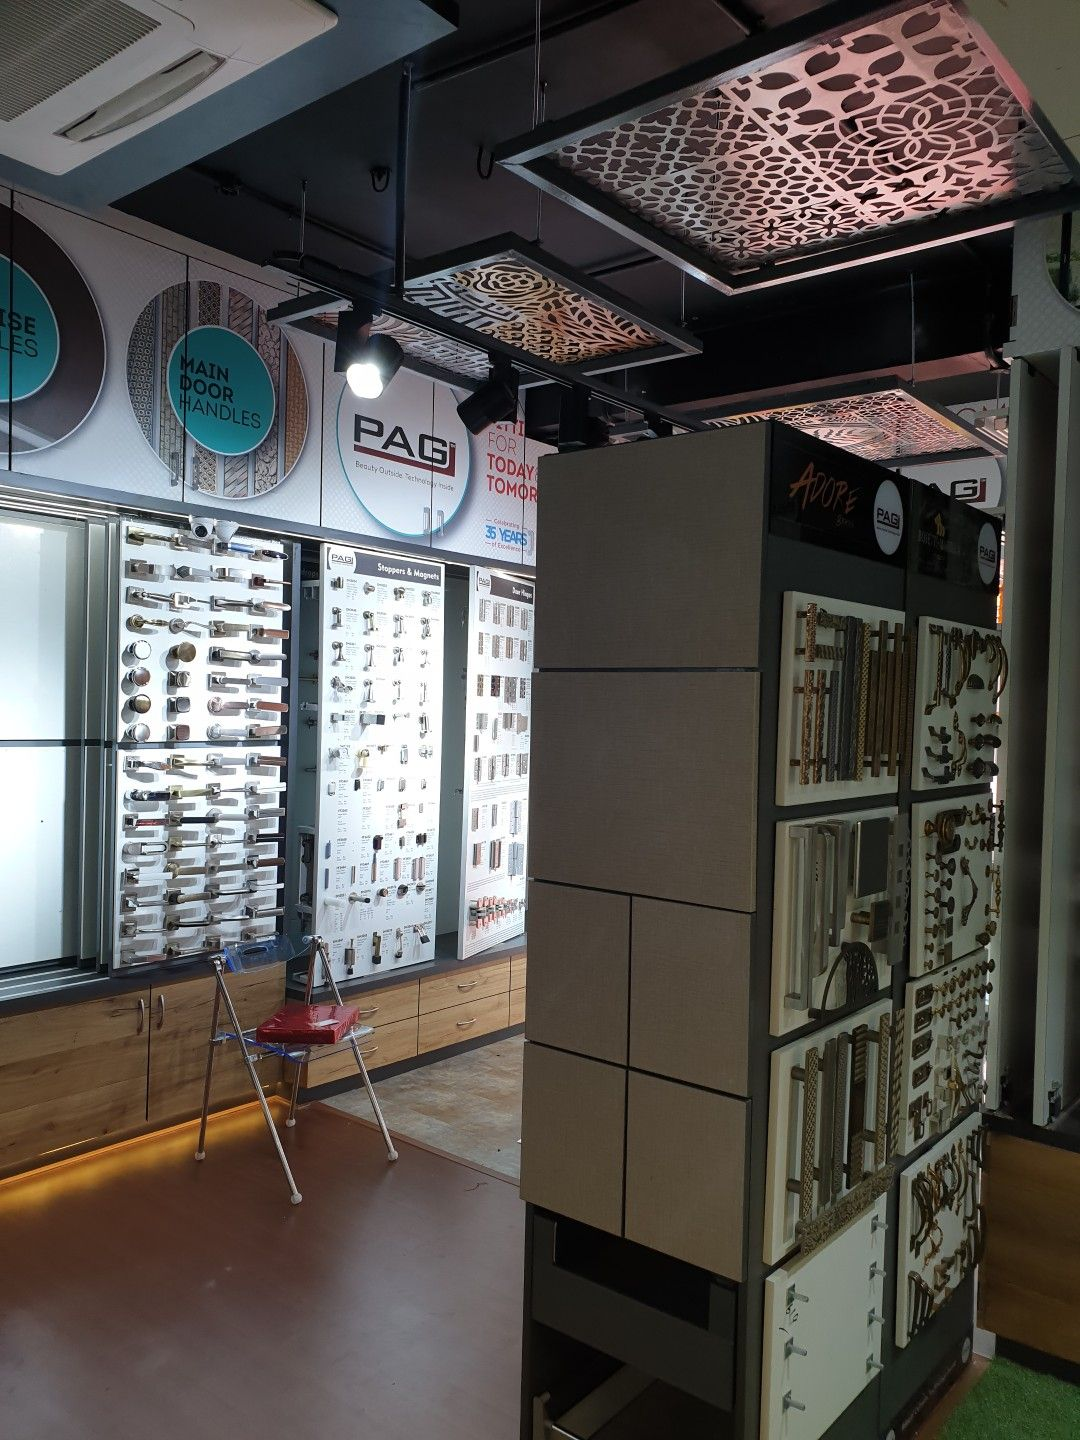 PAG Pune 80th Hardware Store of India   Hardware Display Showrooms ... 66910b5ef0b6